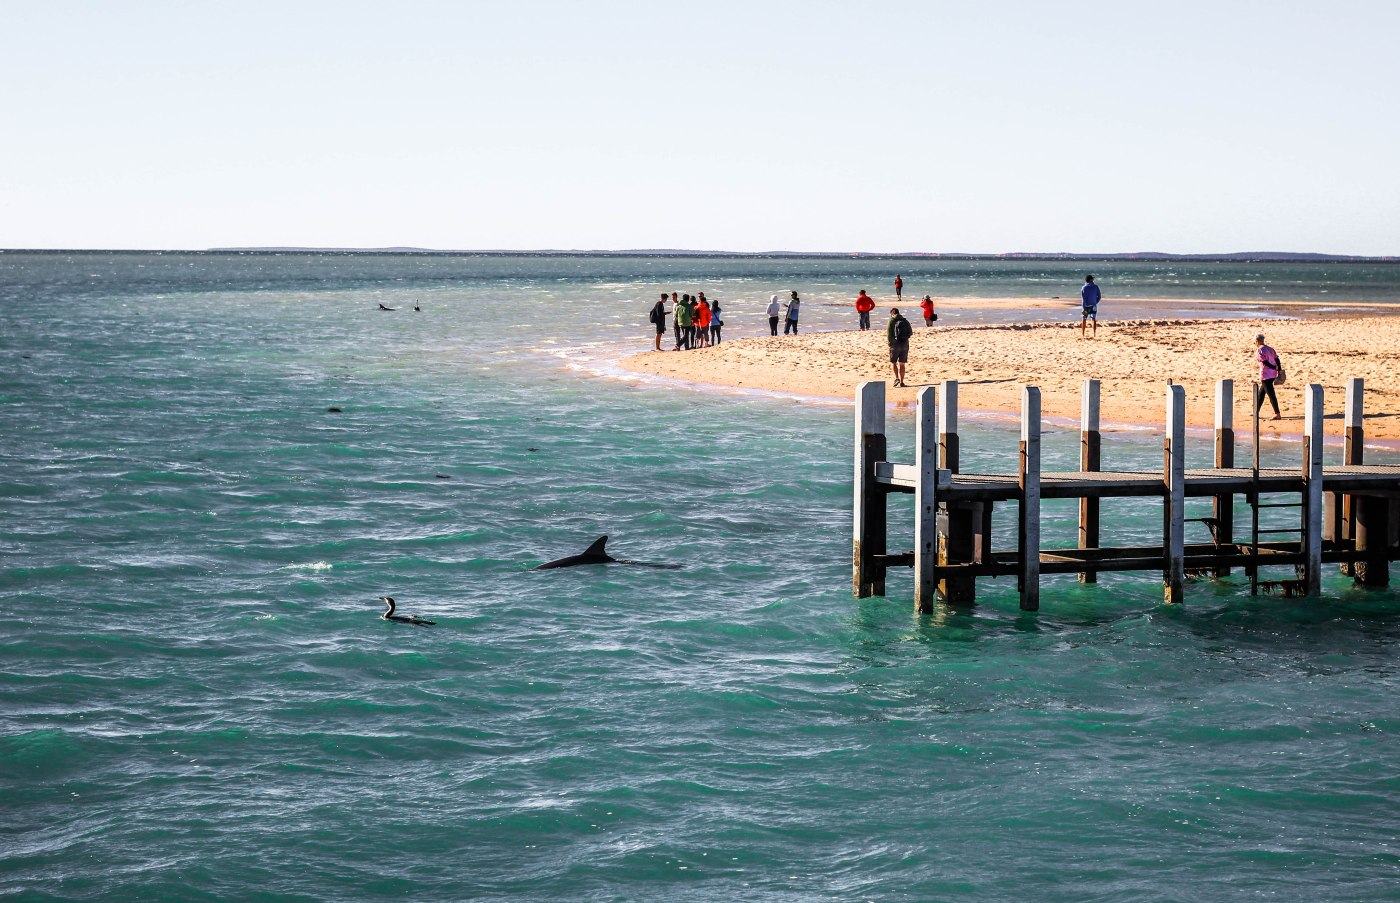 A Western Australia Road Trip Stromatolites and dolphins in Shark Bay